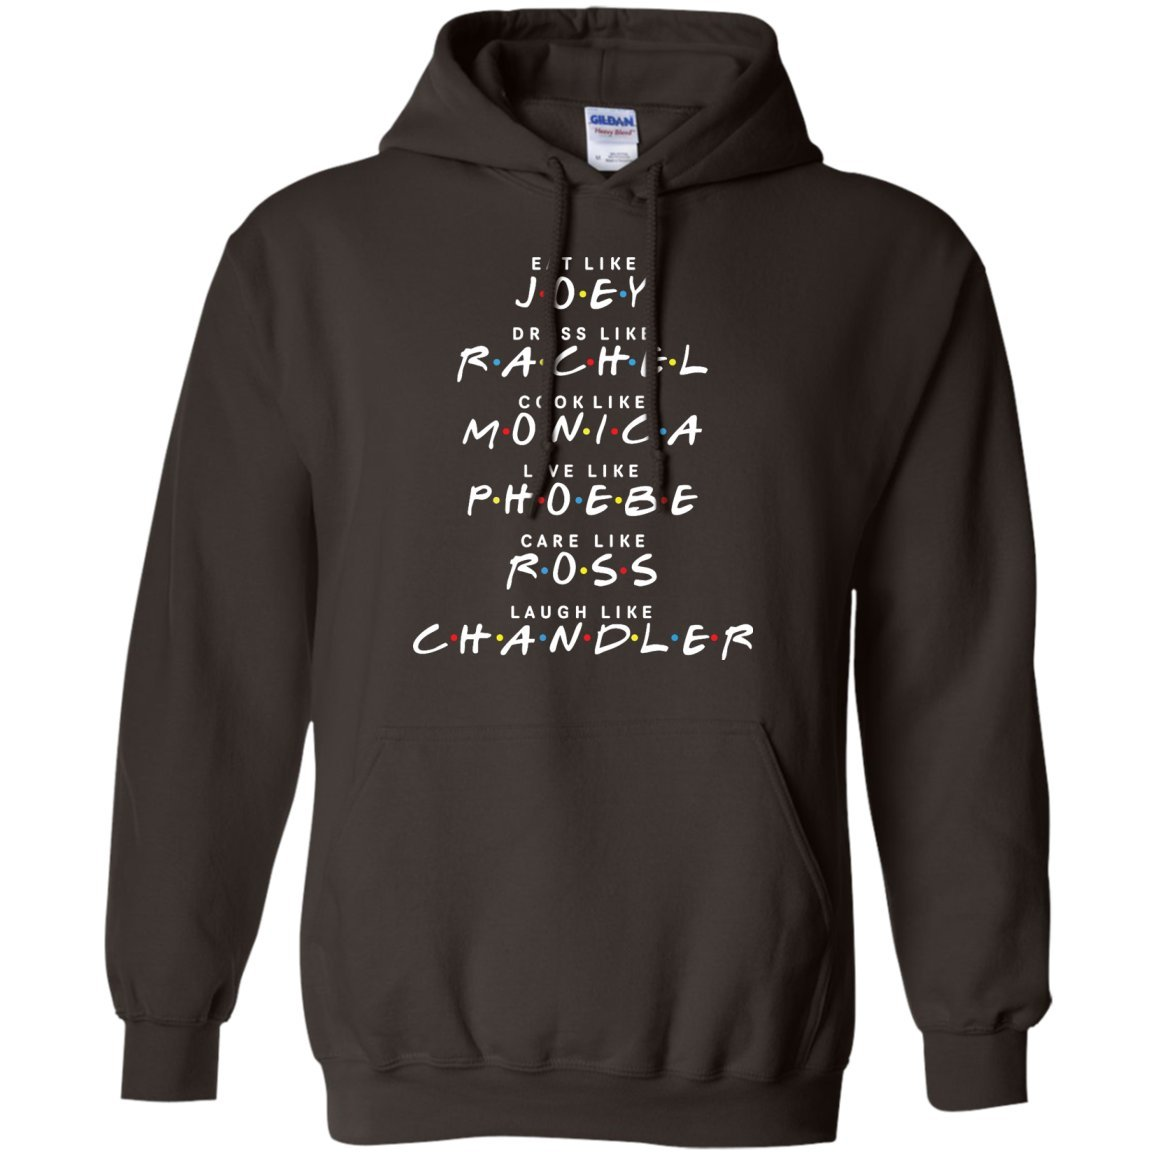 Amazon.com: Friends Eat like JOEY, Dress like RACHEL Pullover Hoodie 8 oz: Clothing